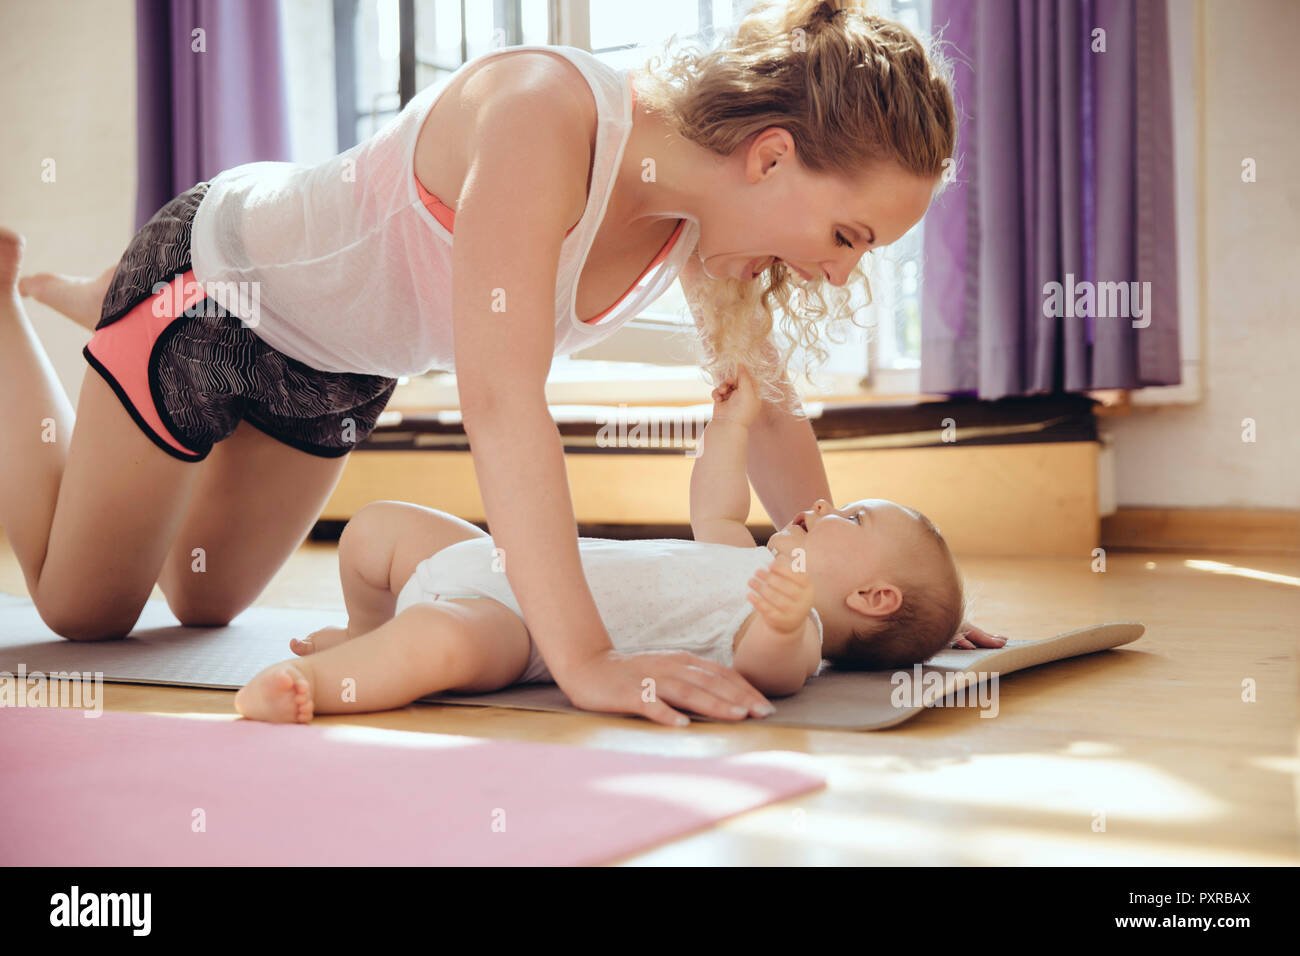 Mother playing with her baby on yoga mat while working out Stock Photo